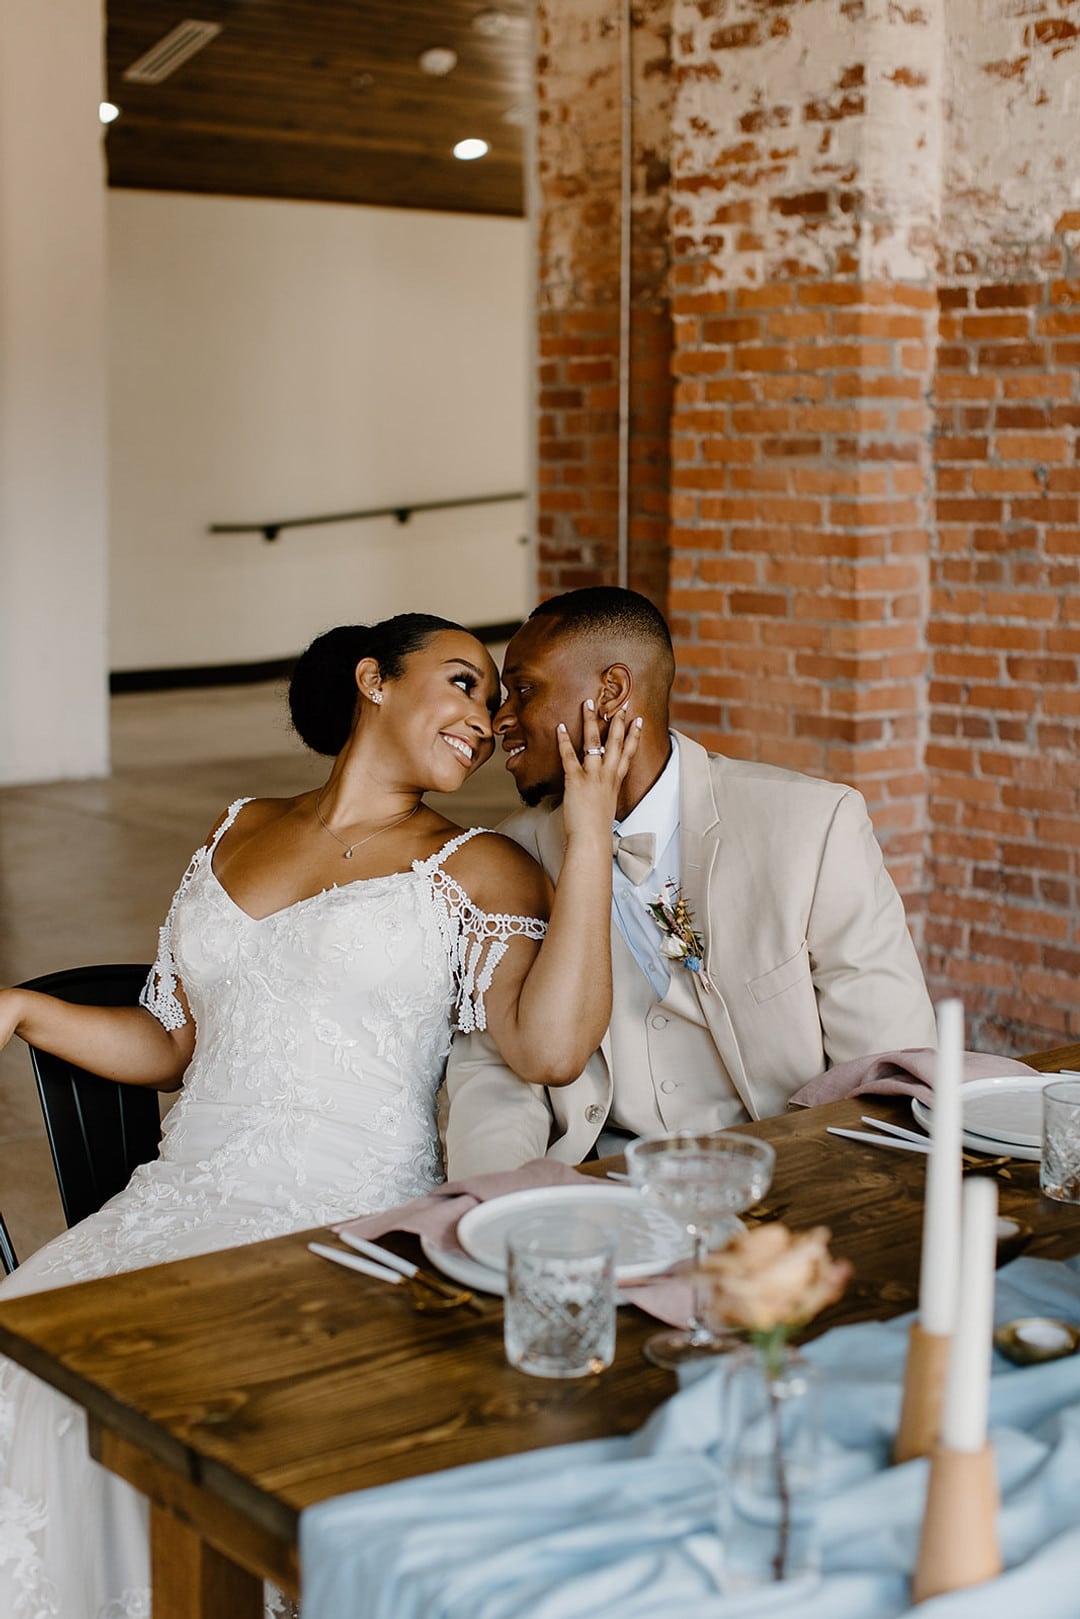 bride holding the grooms face as they are sitting at the reception table.